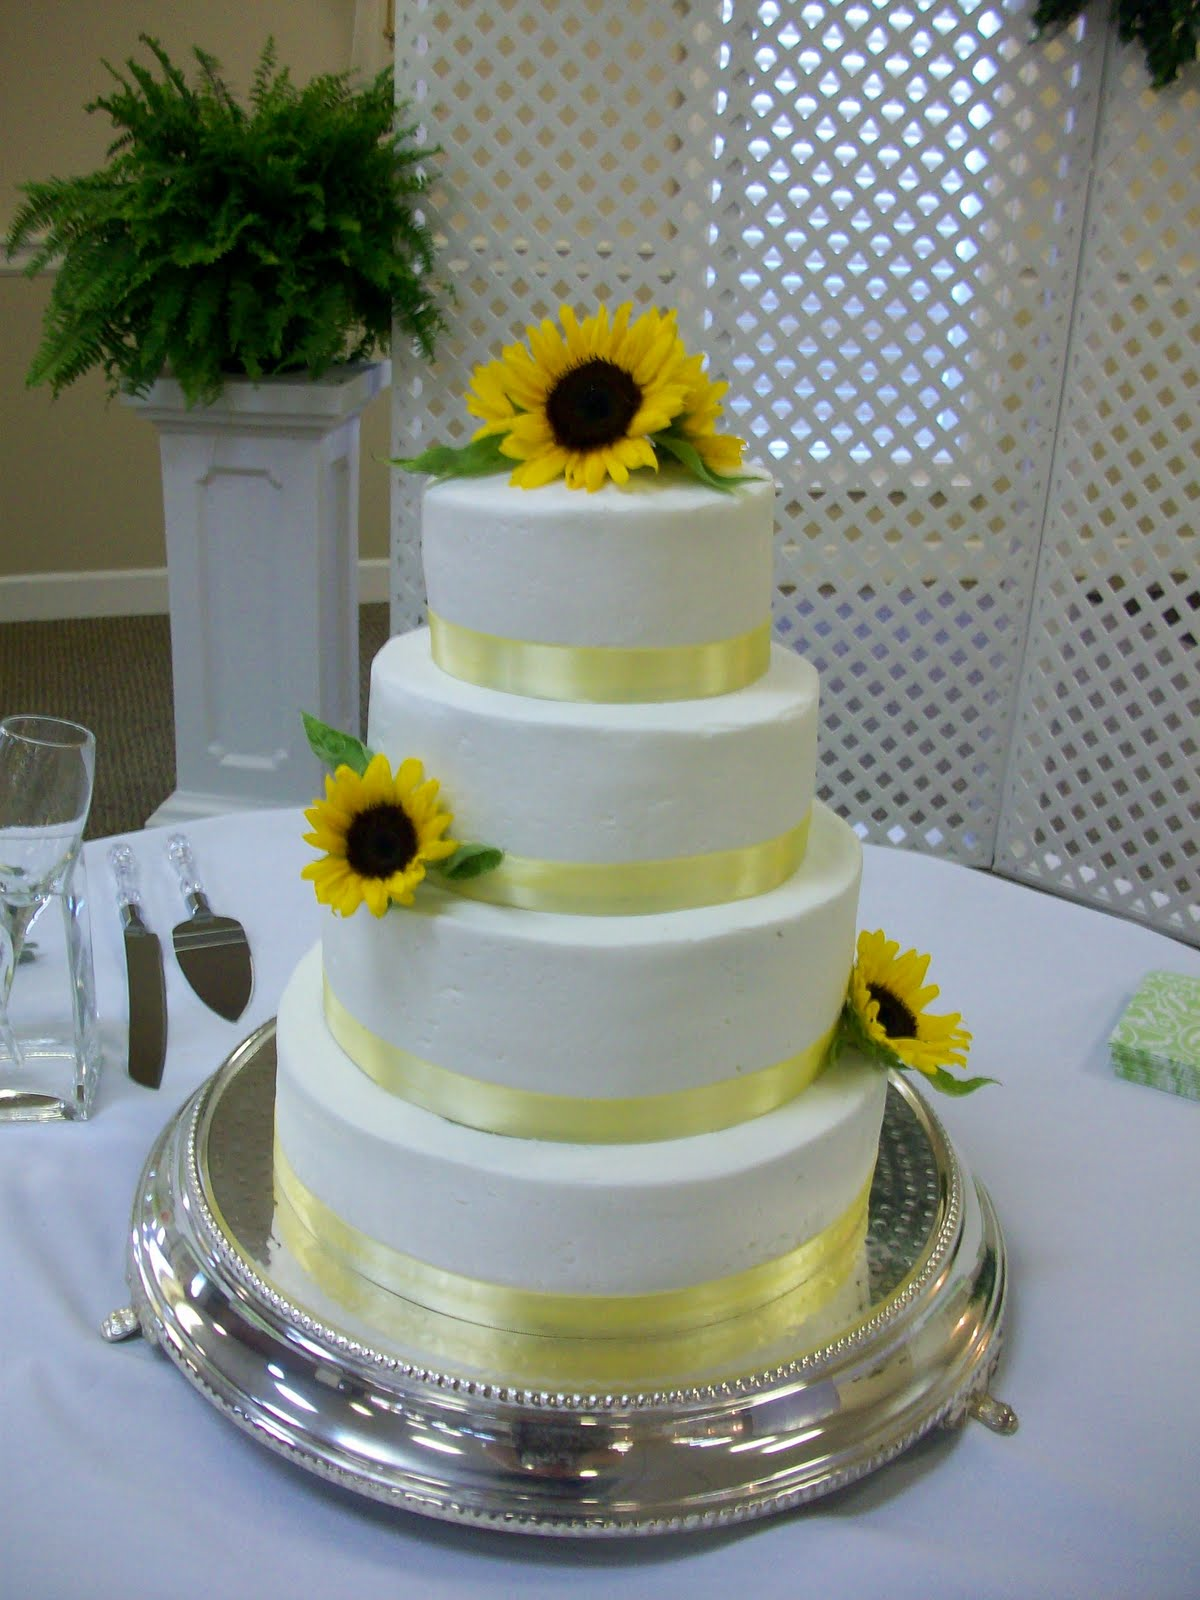 Best - Wedding Cake 5/15/